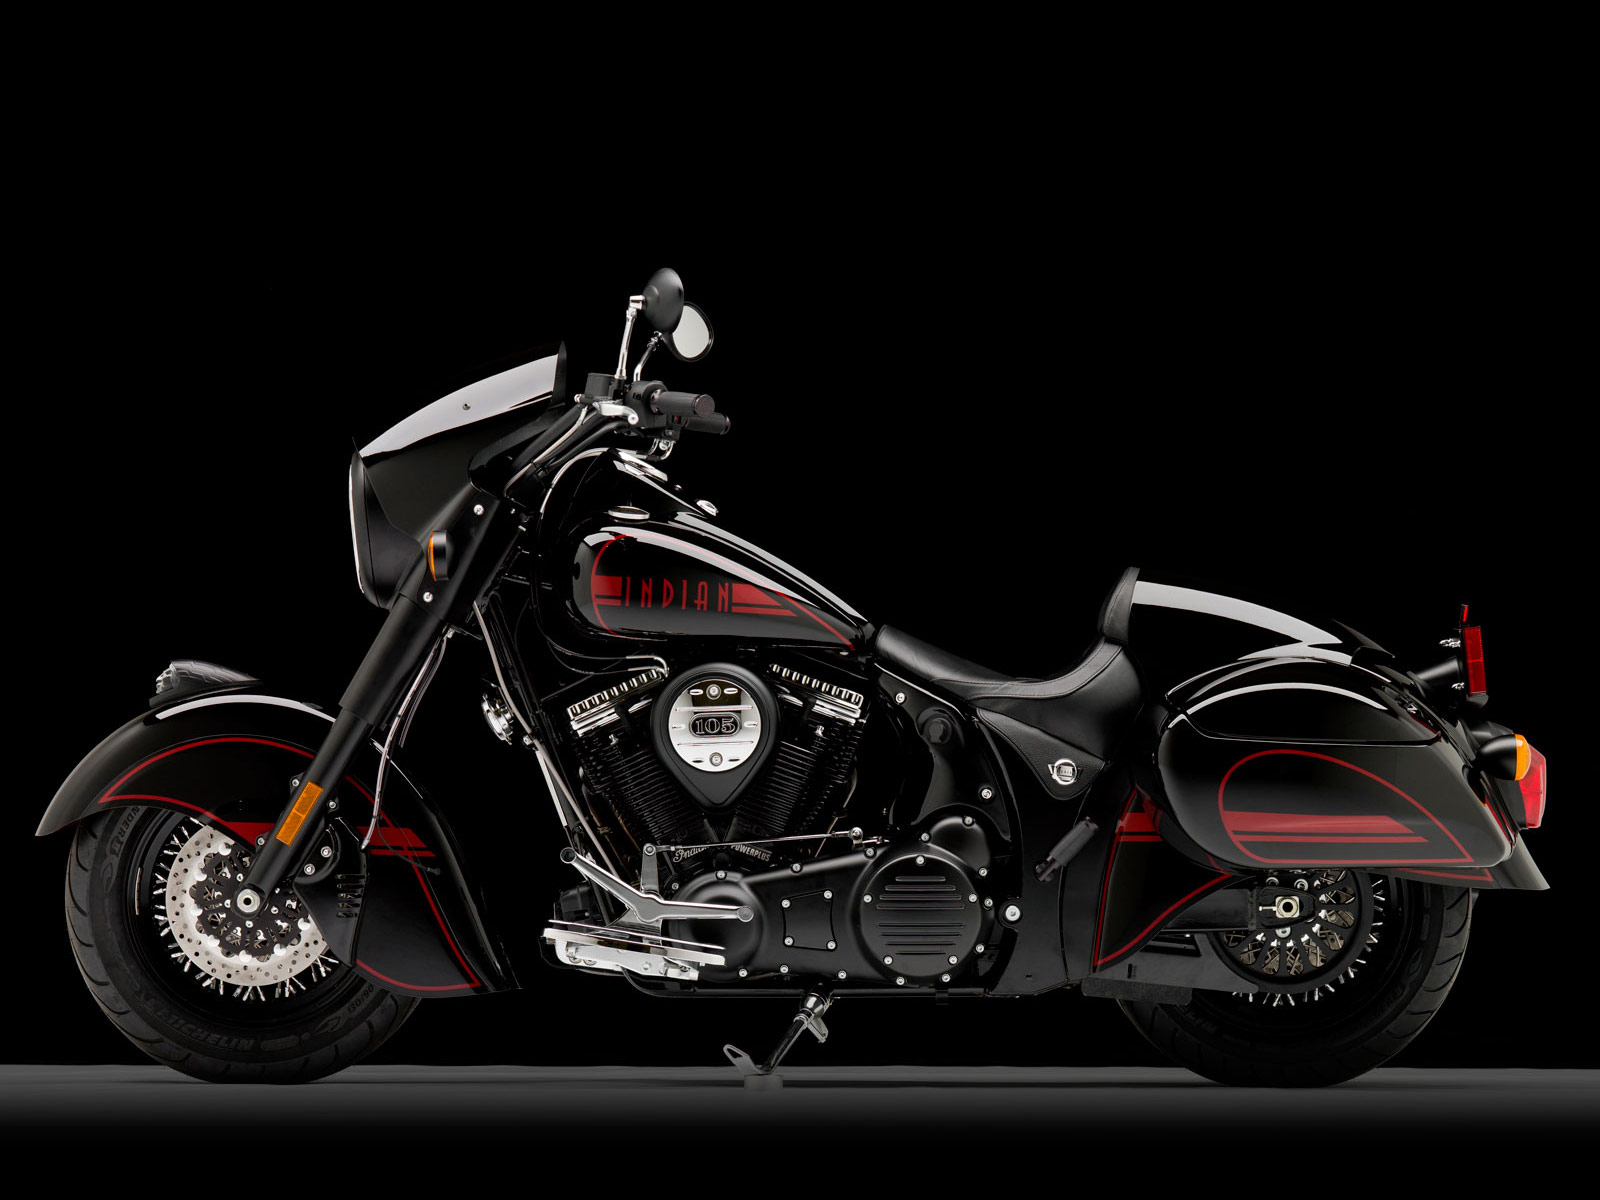 2011 INDIAN Chief Blackhawk accident lawyers wallpaper 1600x1200